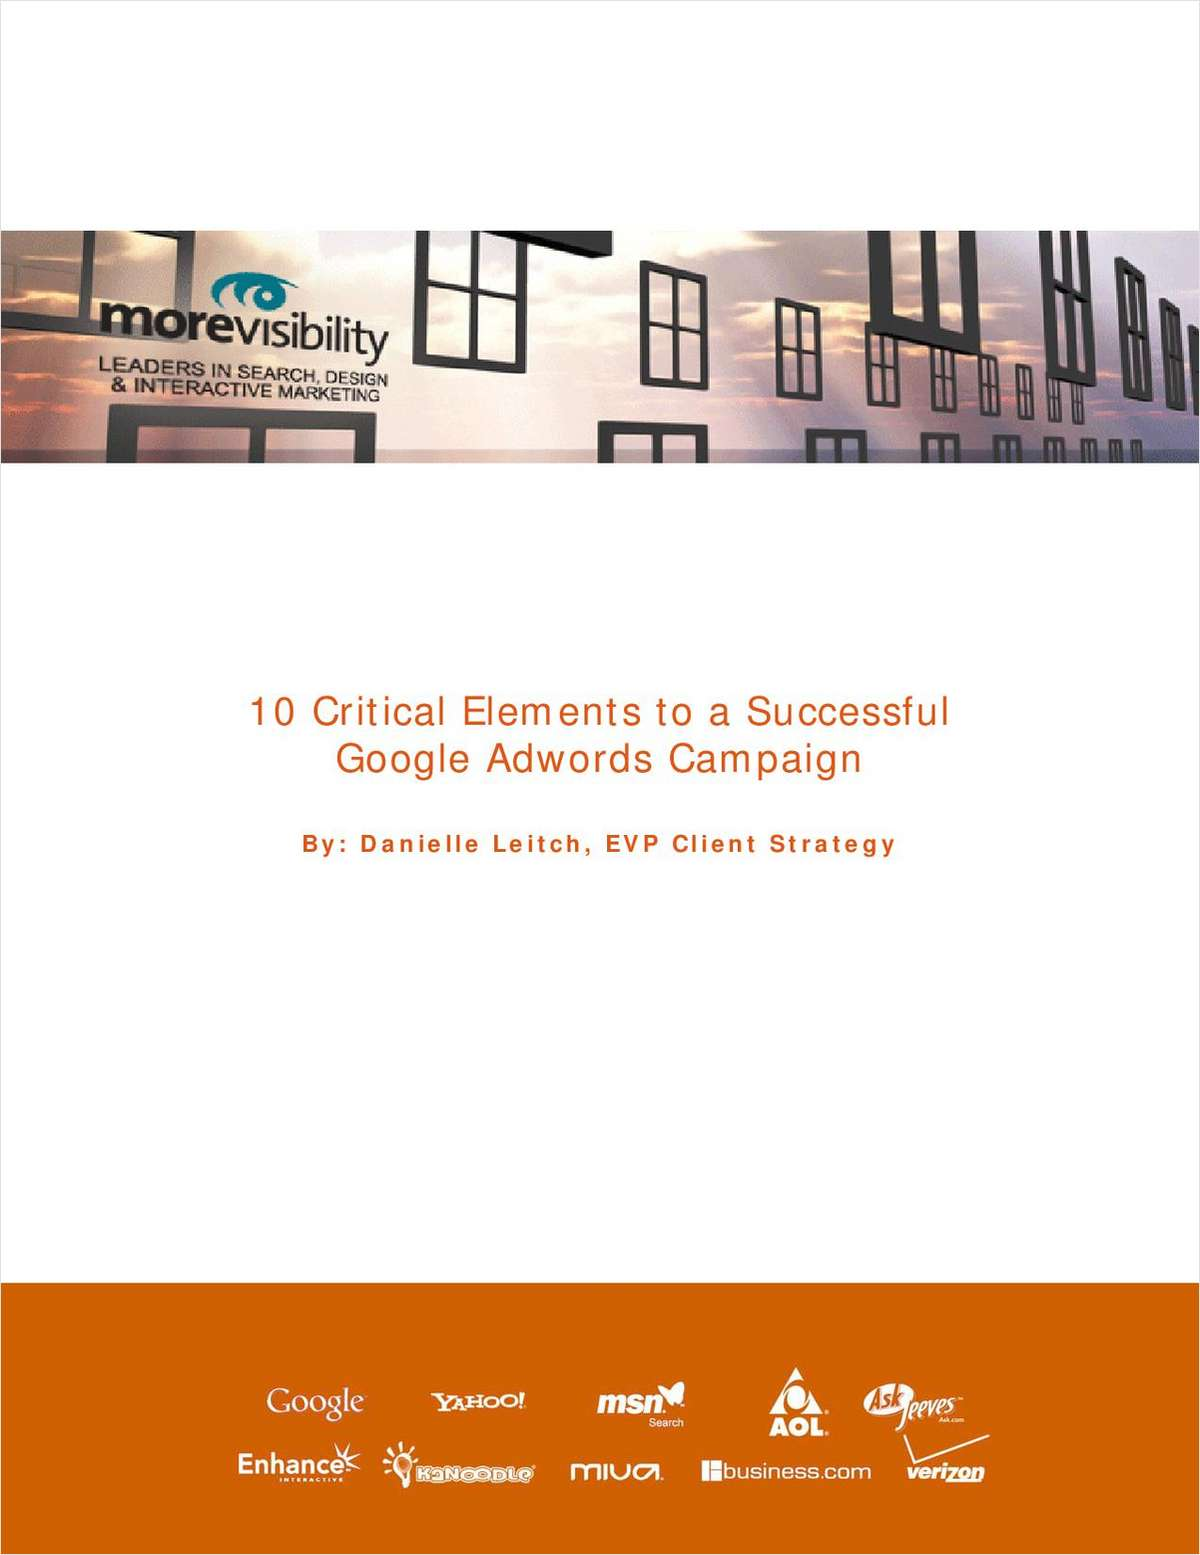 10 Critical Elements for a Successful Google AdWords Campaign